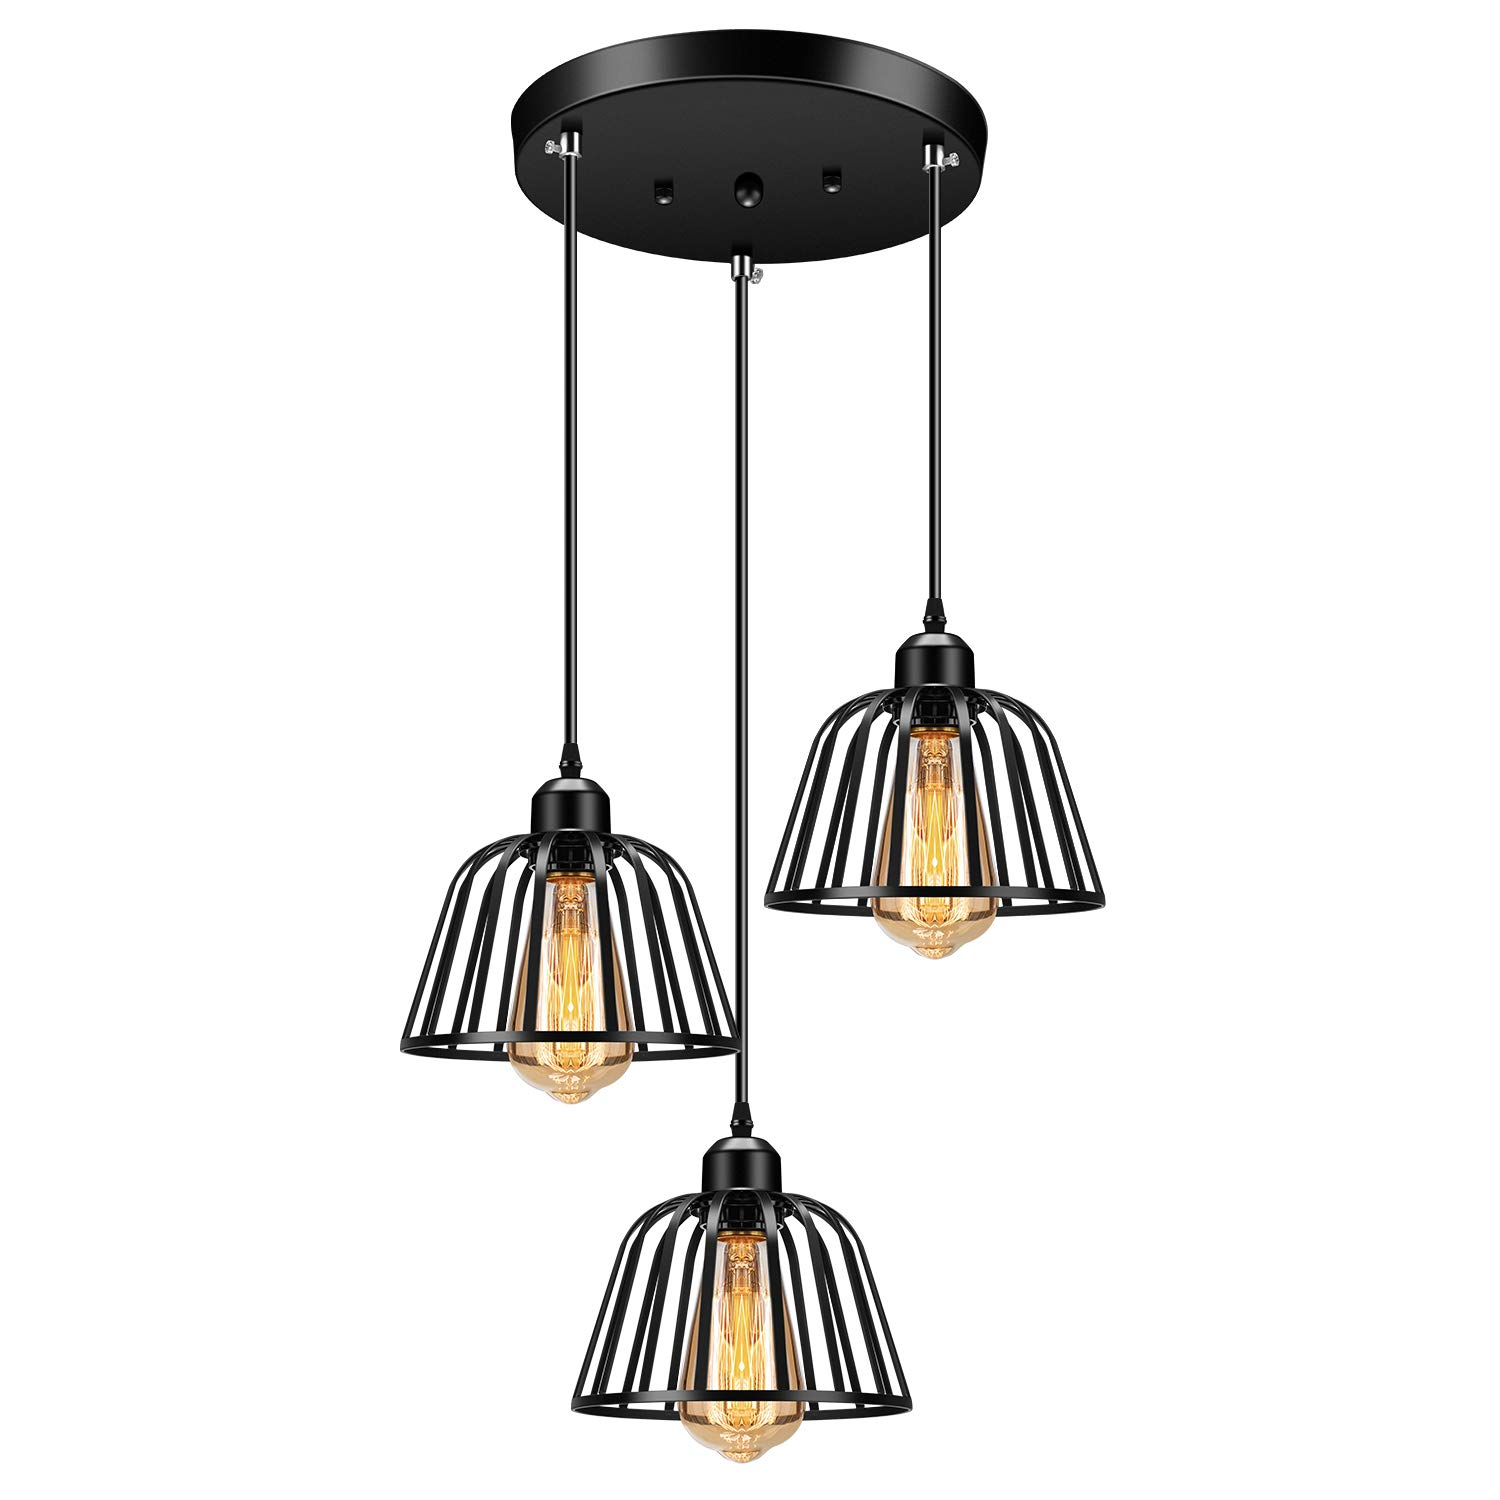 Industrial Pendant 3 Lights Pendant Lighting Fadimikoo Farmhouse Rustic Style Hanging Light With Matte Black Cage Vintage Kitchen Island Pendant Light Fixture For Dining Room Bedroom Hallway Bar Buy Online In China At